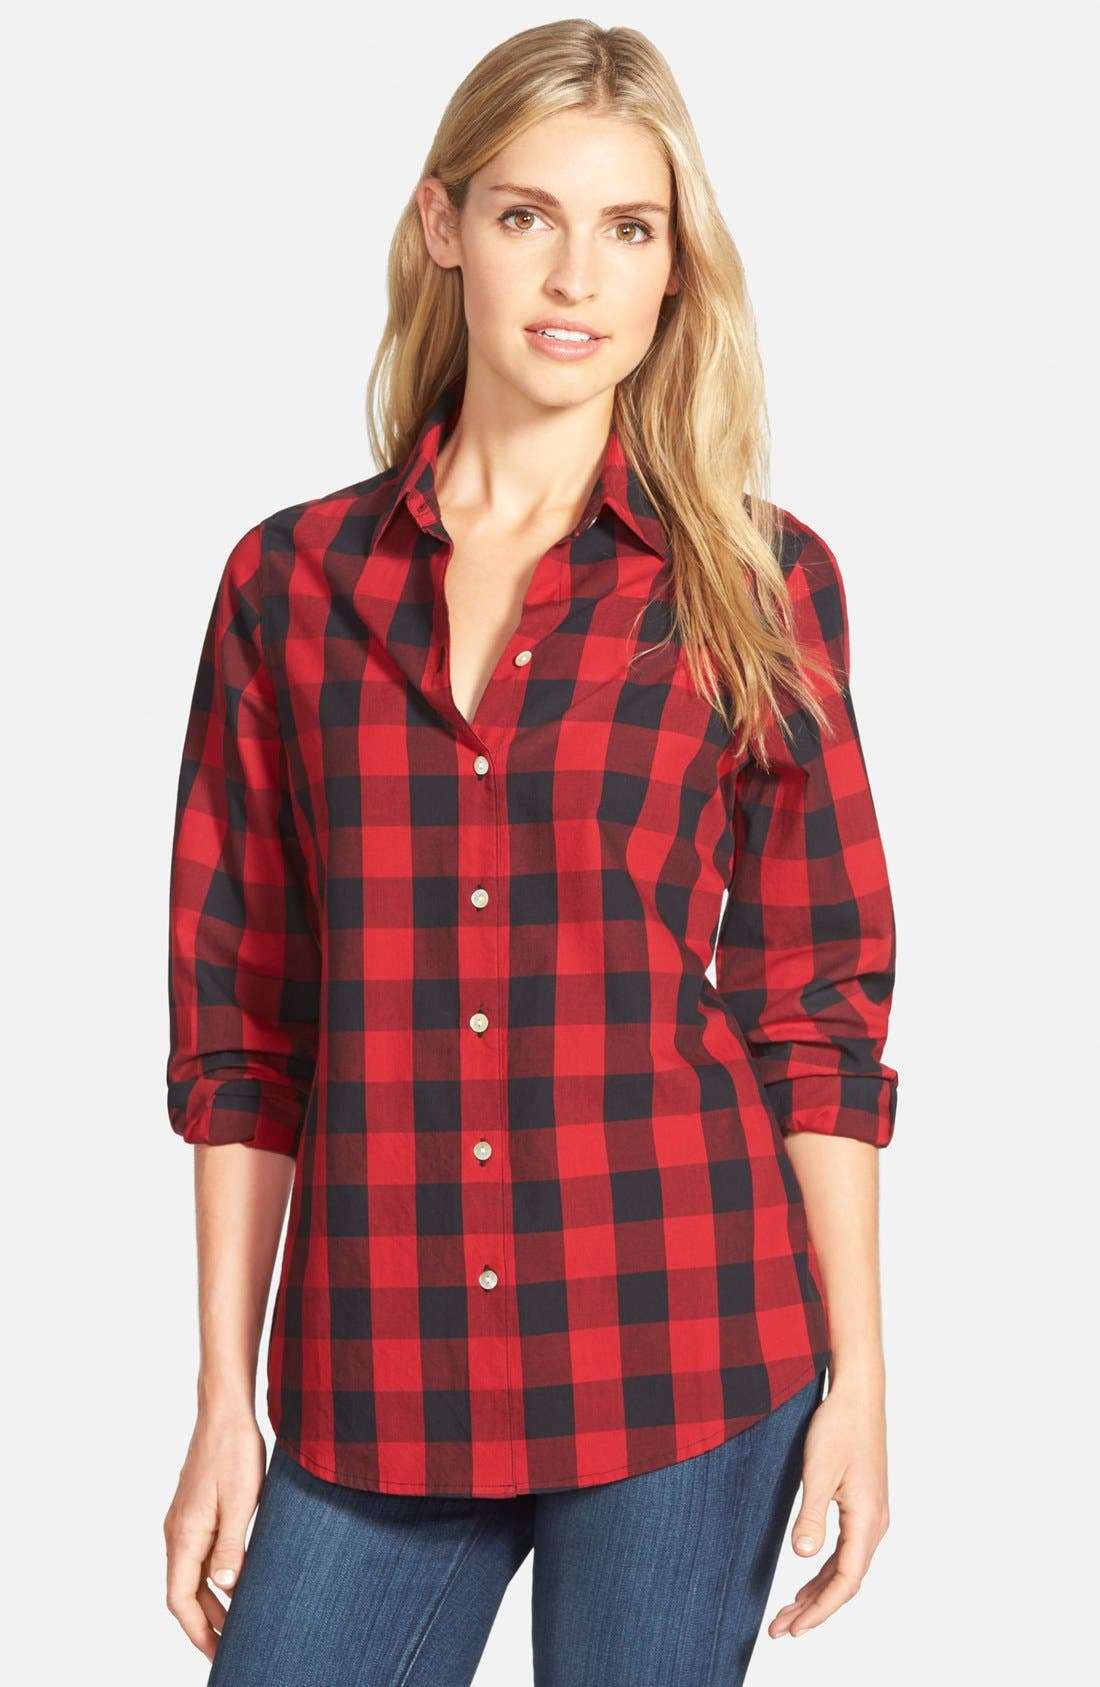 Buffalo Check Cotton Shirt,                             Main thumbnail 1, color,                             Red Multi